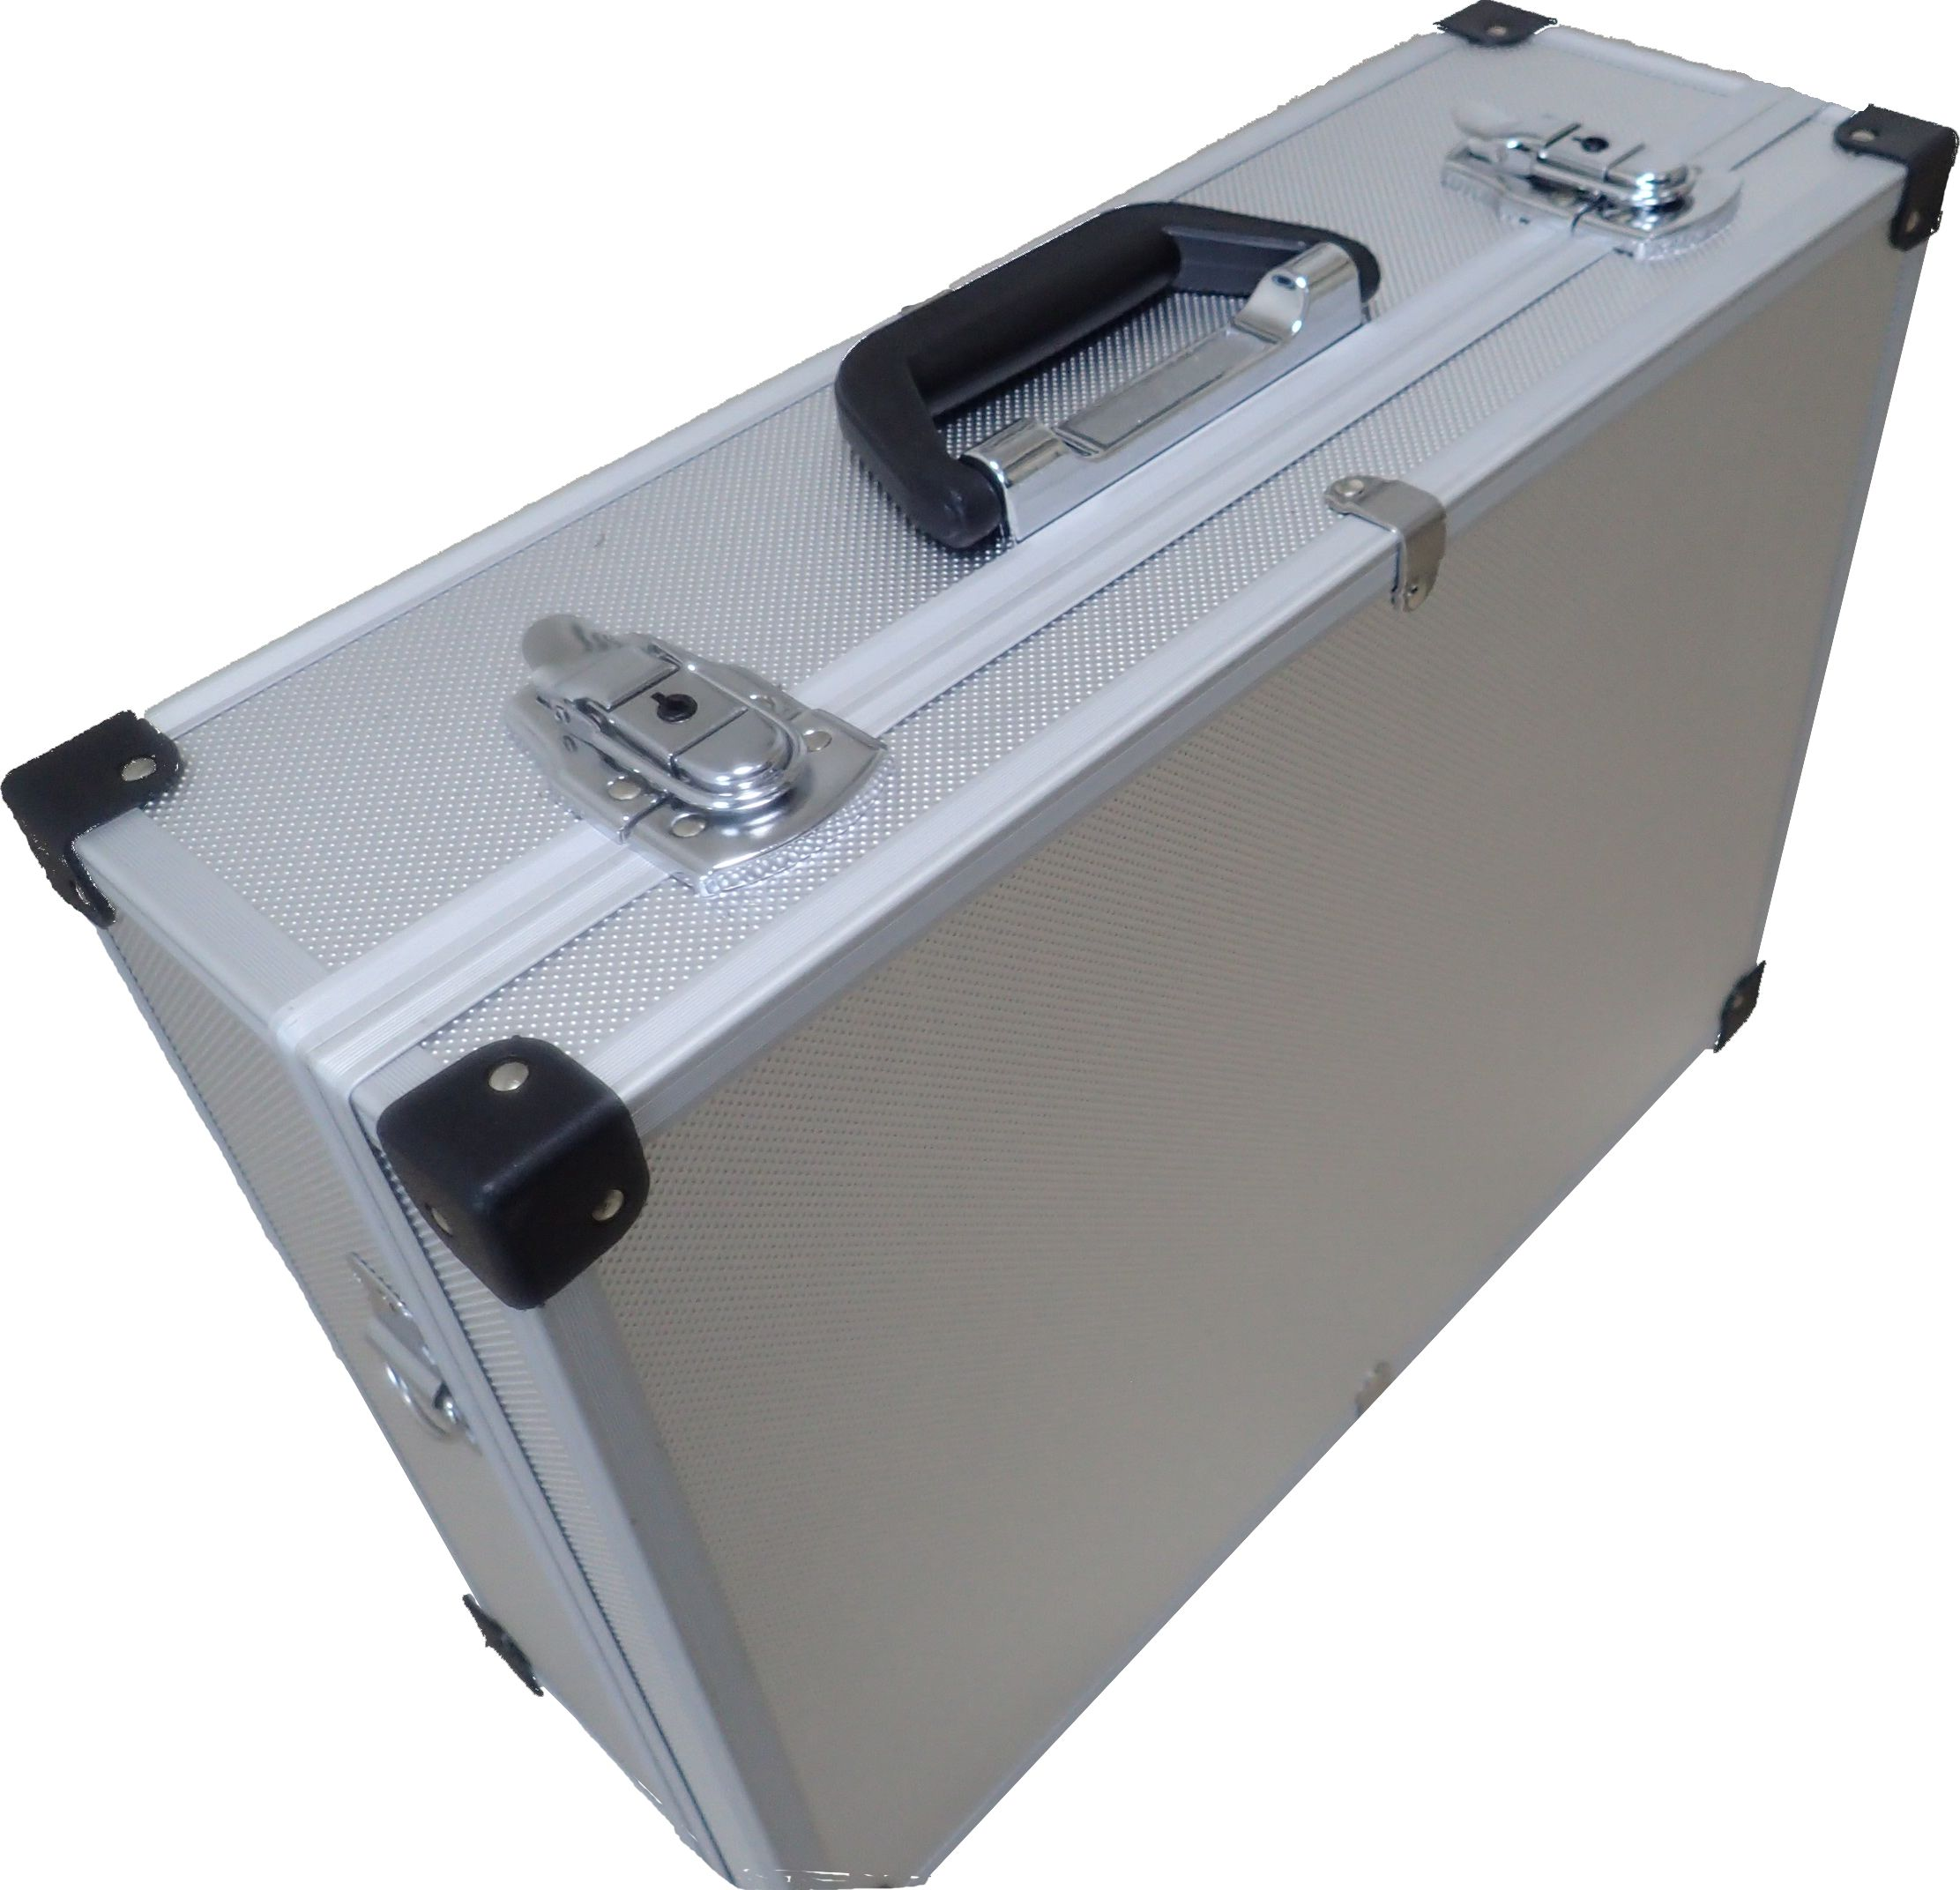 Item LARGE ALUMINUM BRIEFCASE ON THE WORKSHOP EQUIPMENT